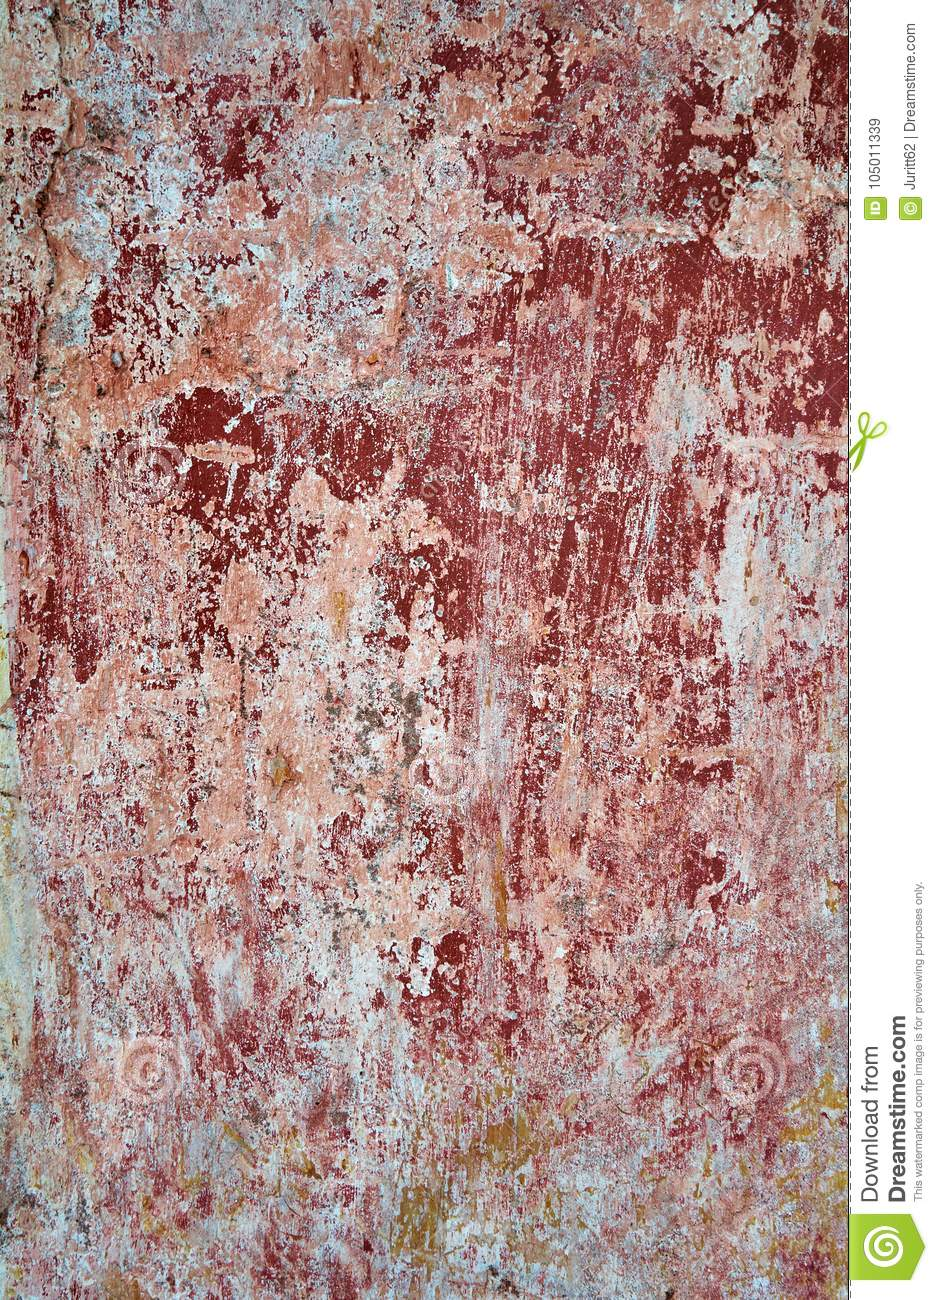 Red And White Color, Detail Of A House Facade Stock Image - Image of ...